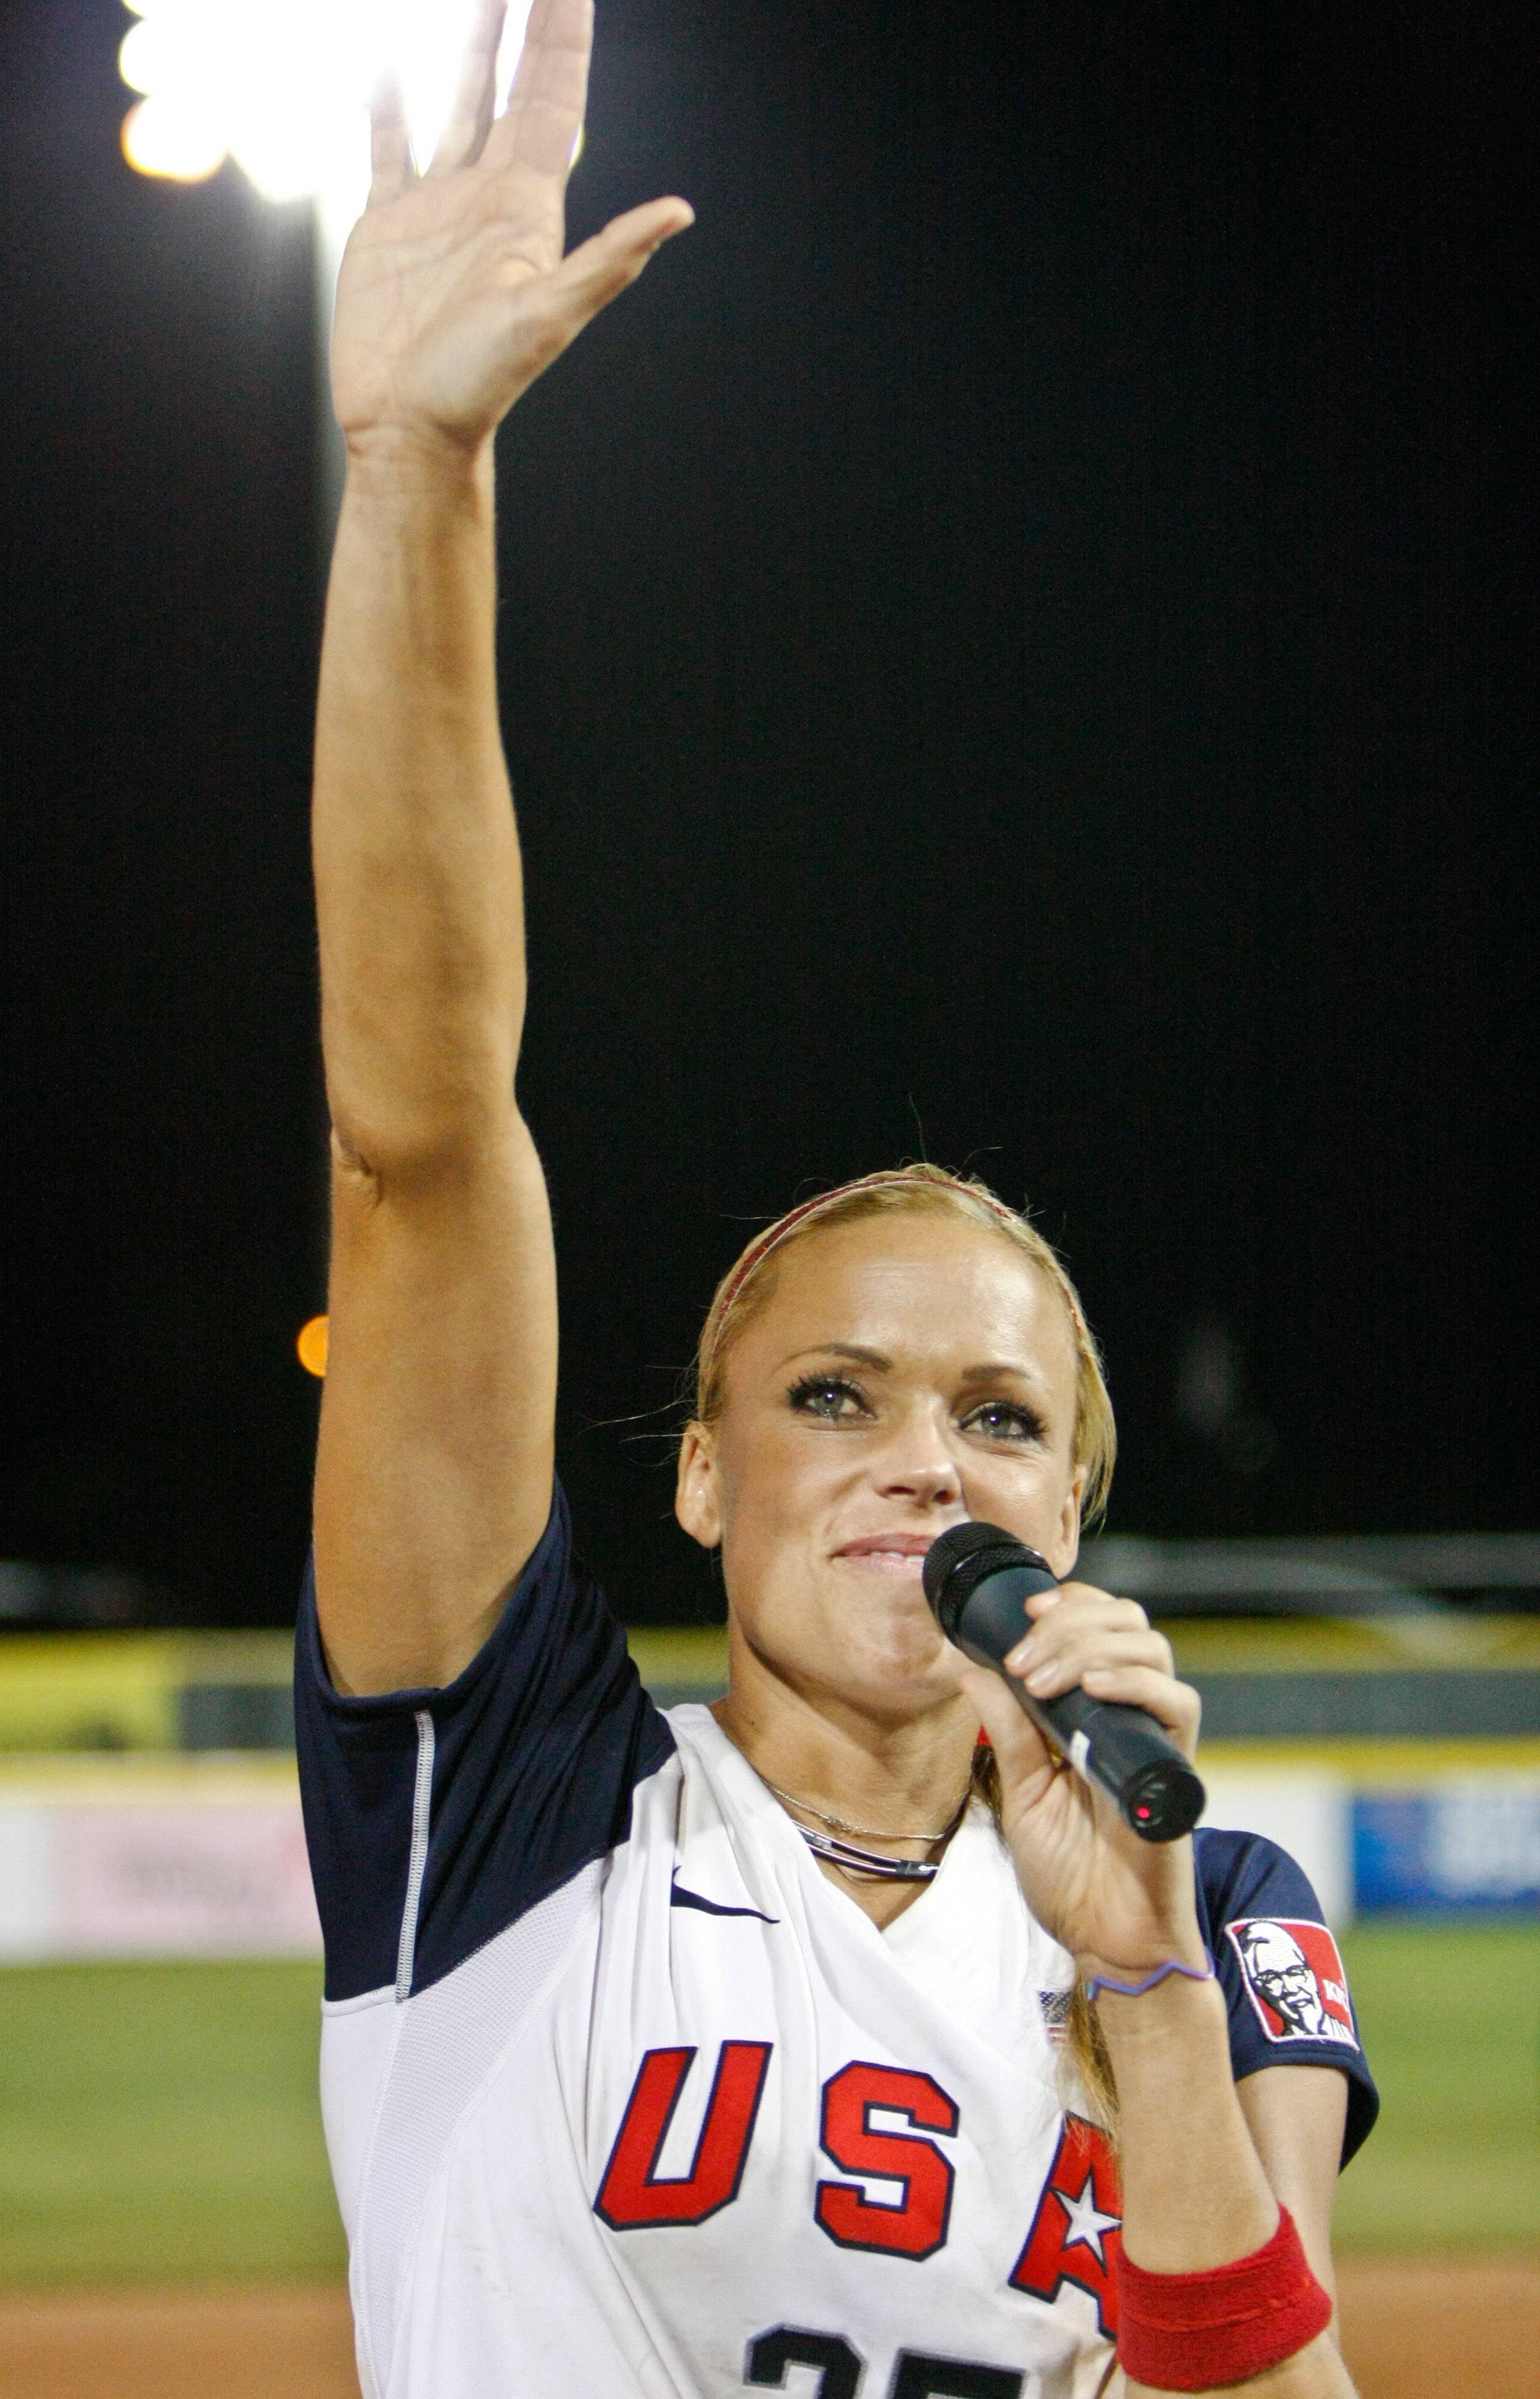 Softball legend Jennie Finch, who won an Olympic gold medal and pitched for the Chicago Bandits, is one of the headliners at the Empowering Girls for Life convention Aug. 10-12 in Rosemont.